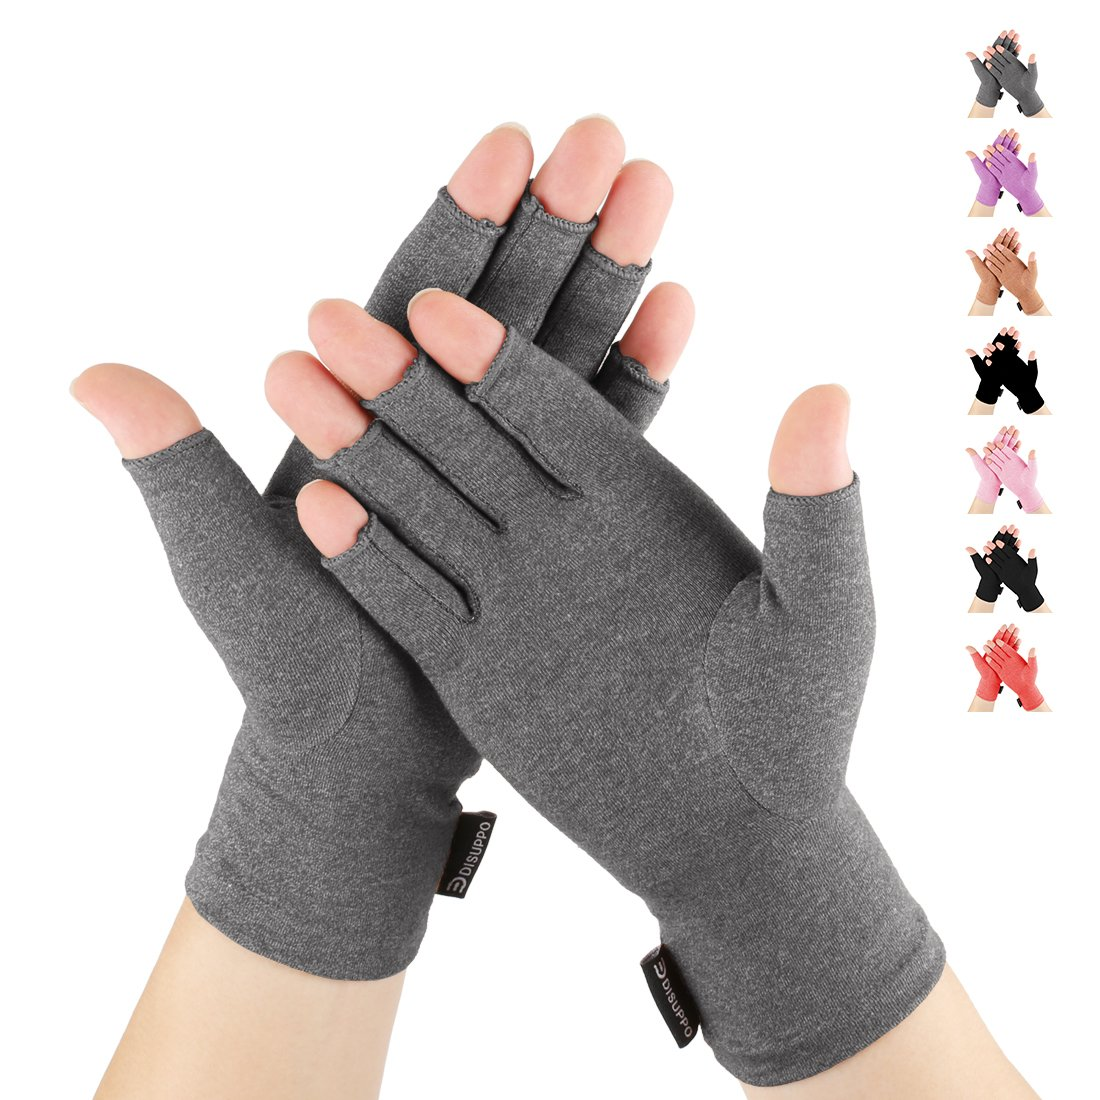 DISUPPO Arthritis Gloves for Women Relieve Pain from Rheumatoid, RSI,Carpal Tunnel, Compression Gloves for Computer Typing, Dailywork, Hands and Joints Pain Relief (Gray, Medium)